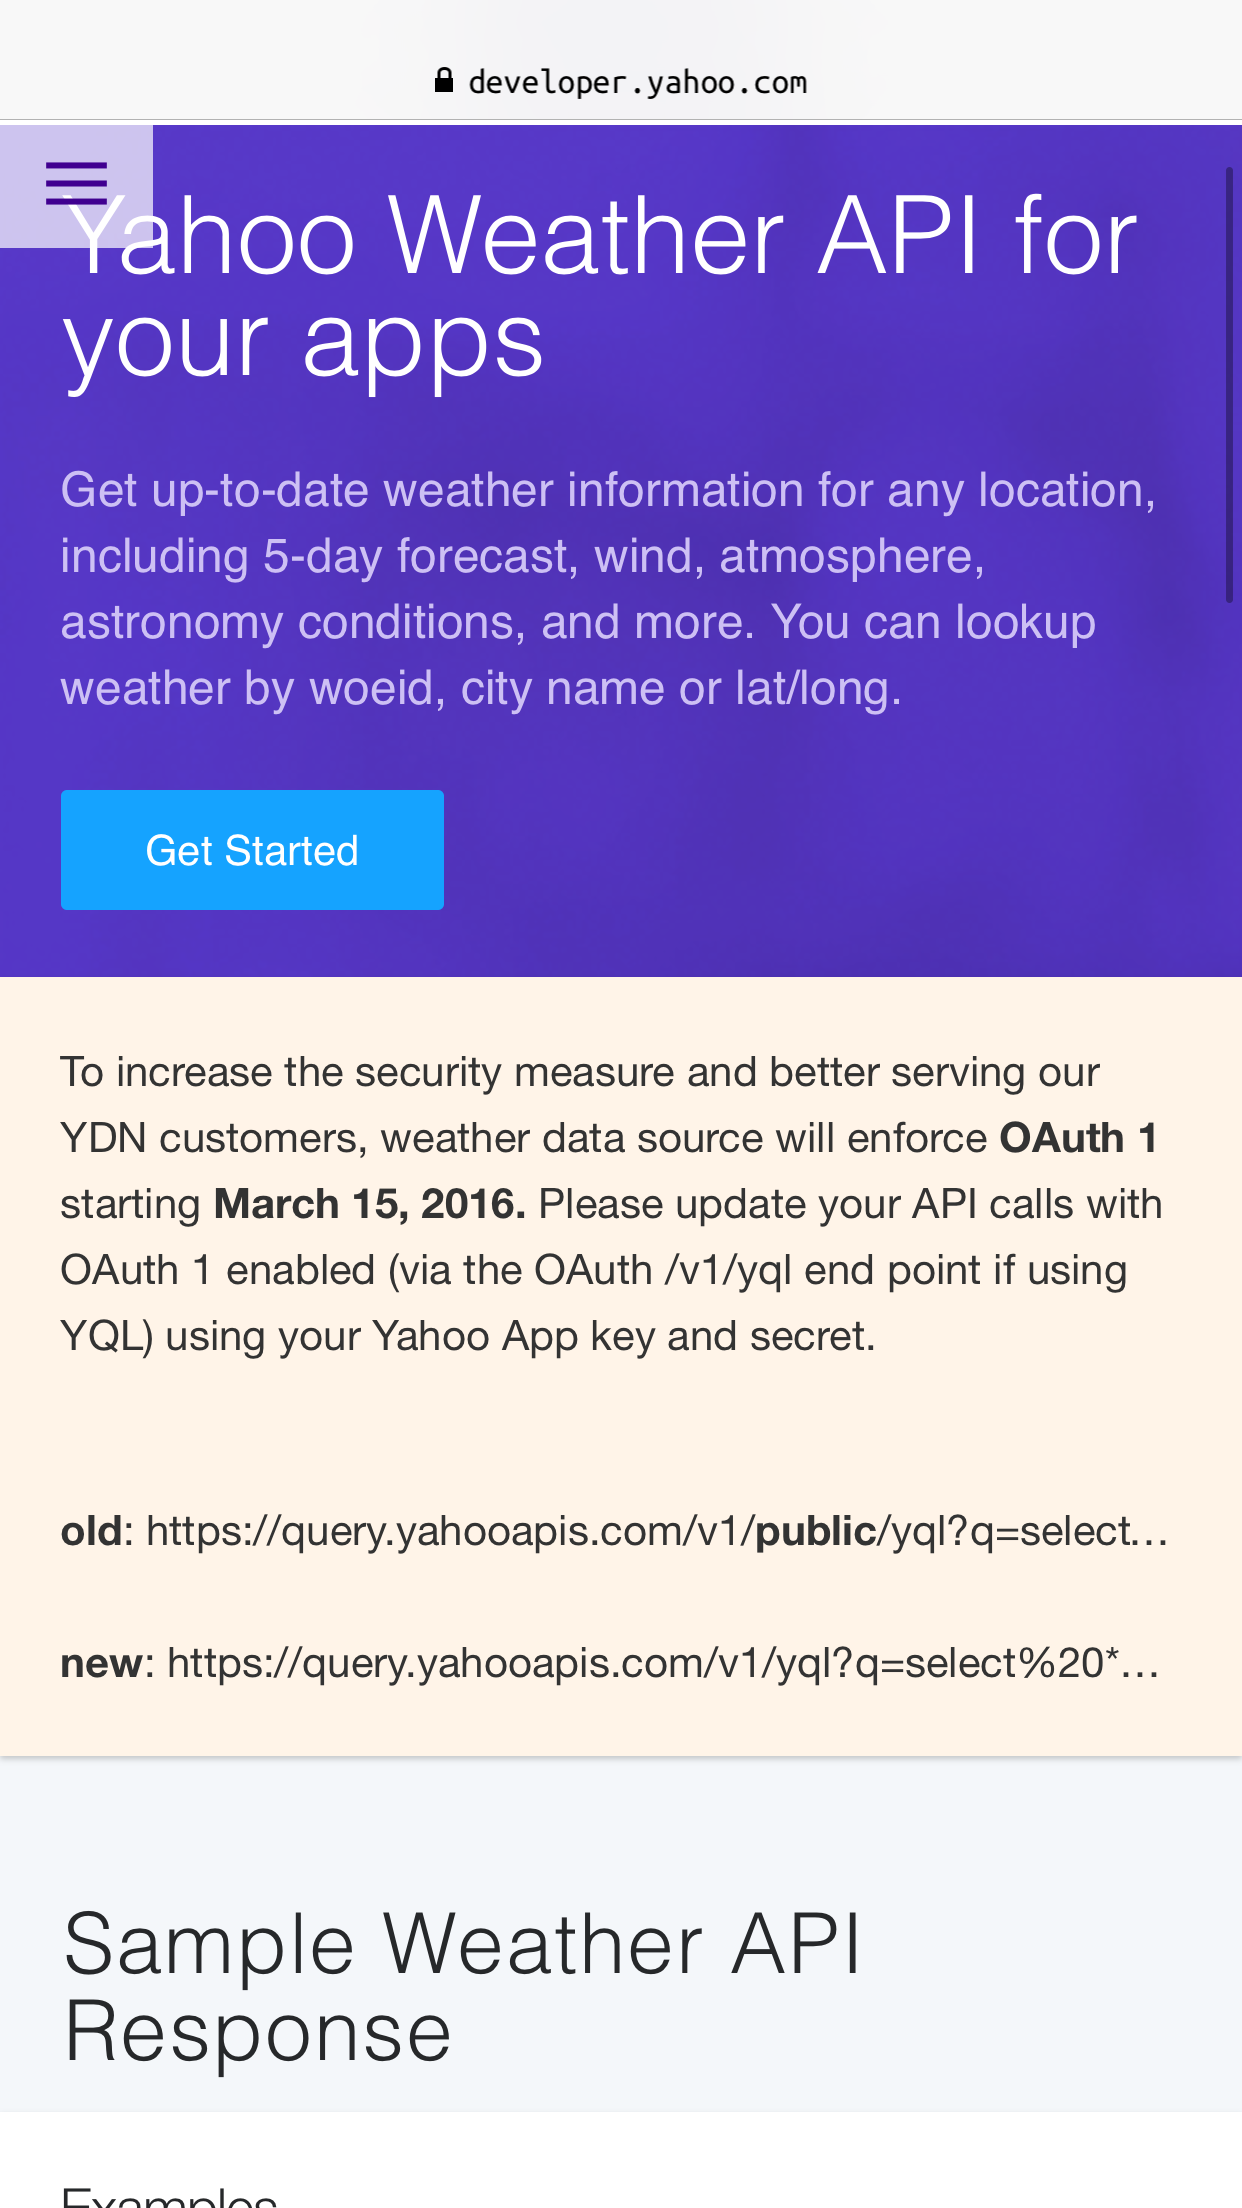 yahoo weather api documentation